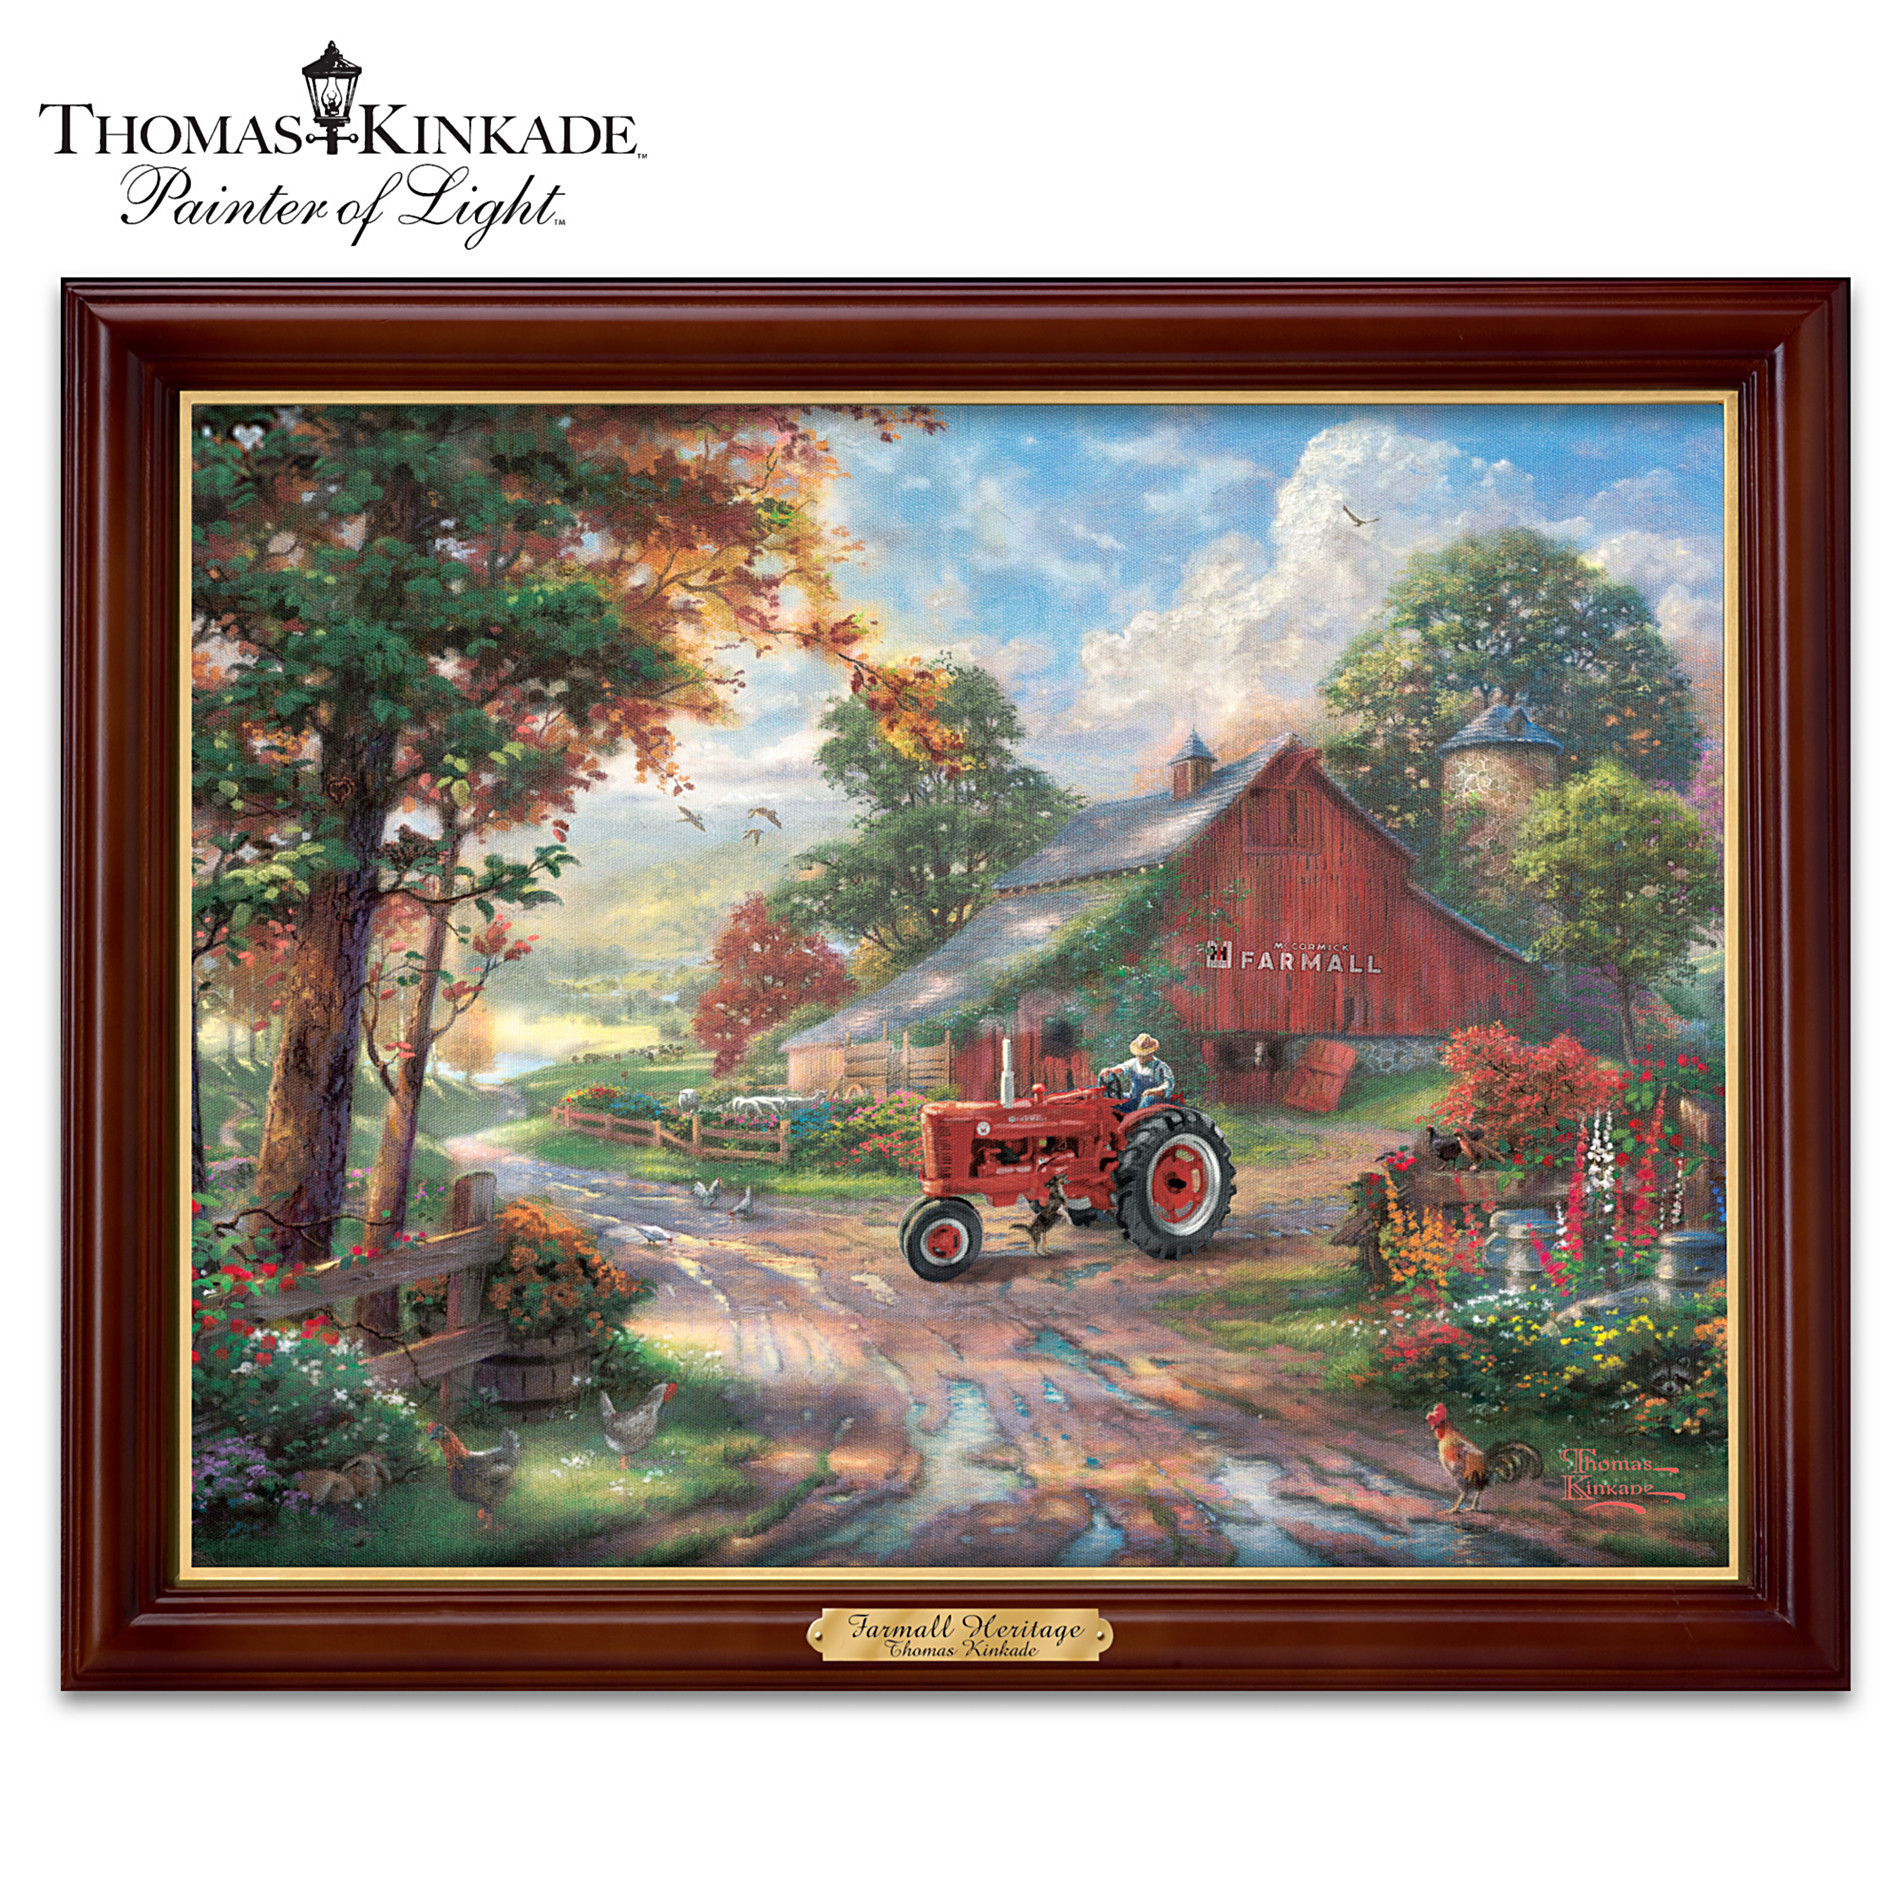 Sears Wall Decor Art : The bradford exchange wall art for home